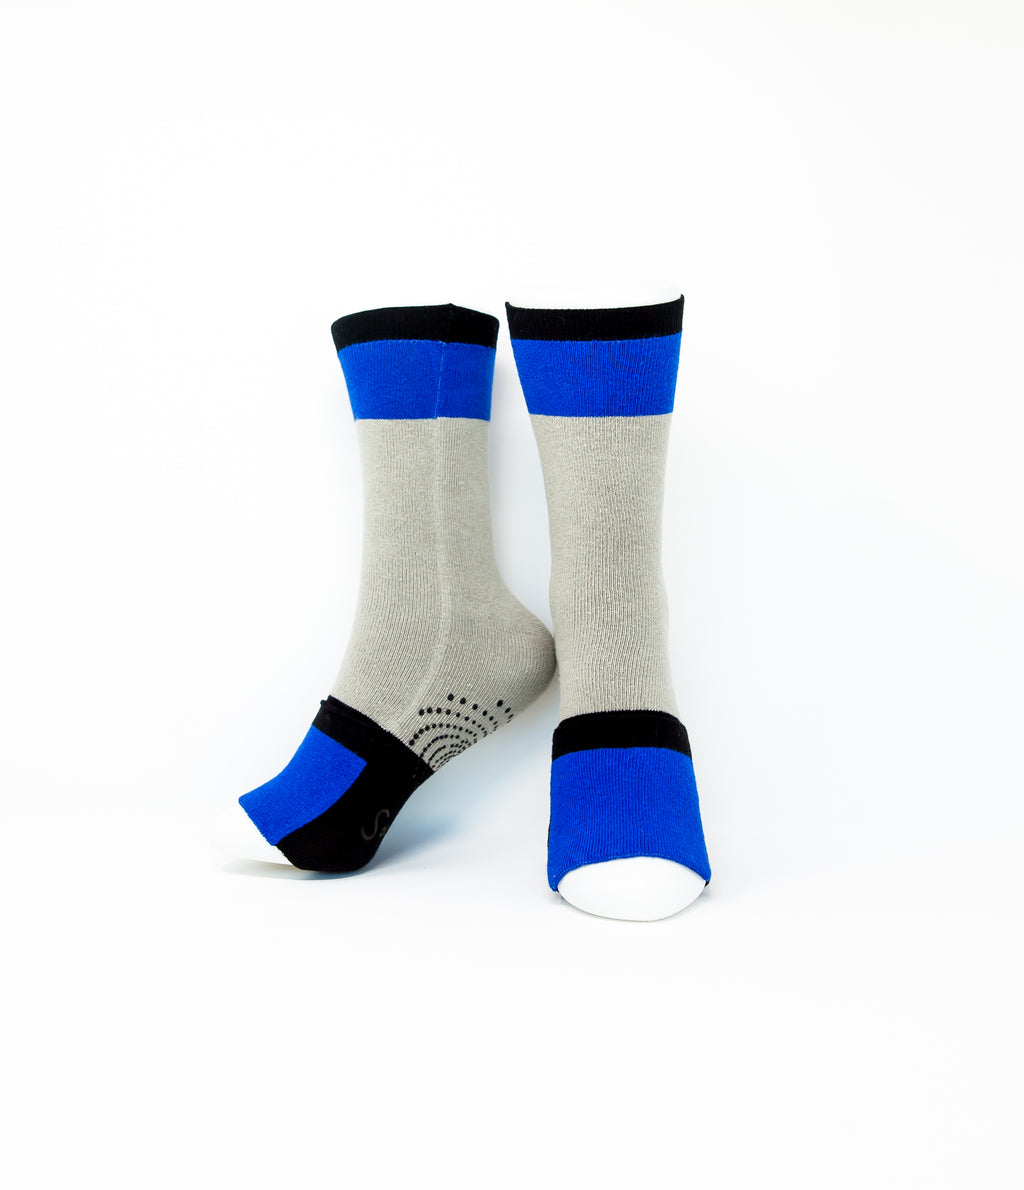 Adult Sockabu Socks - Royal Blue/Grey/Black